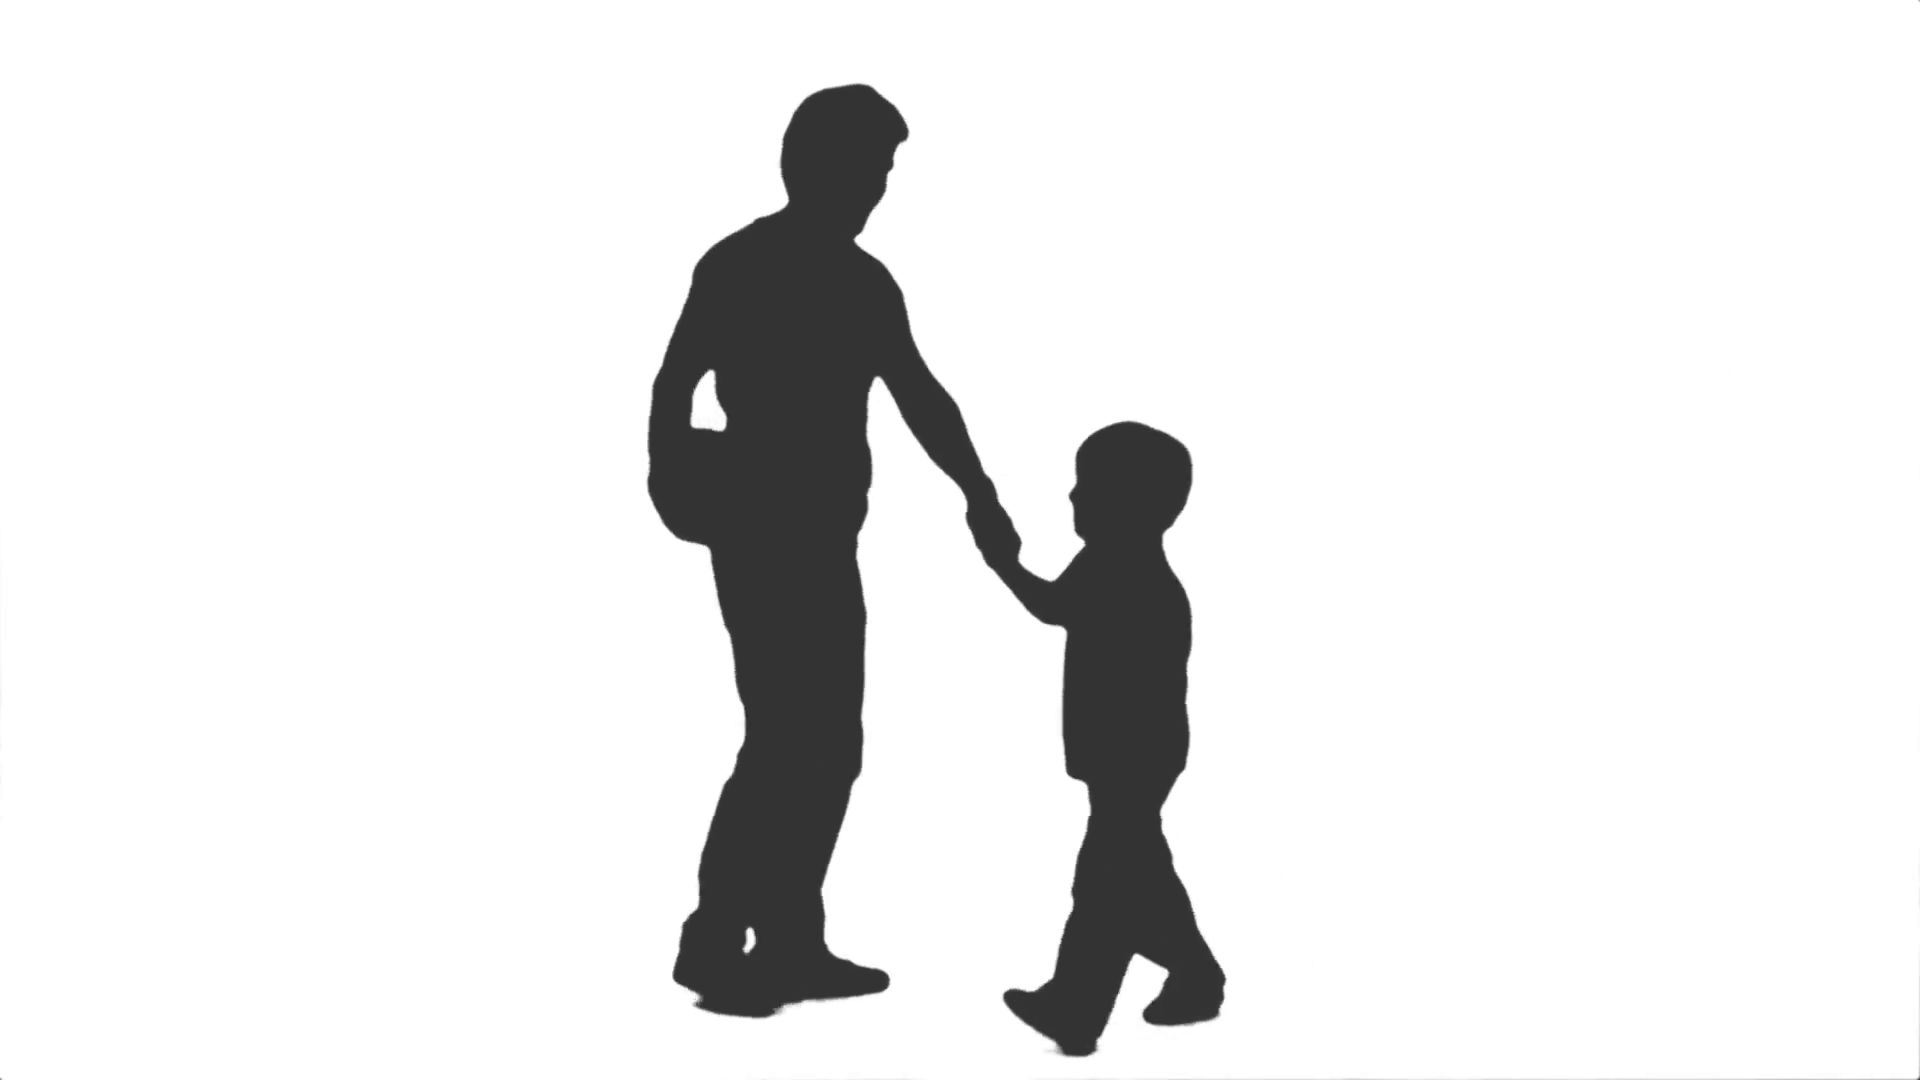 1920x1080 Silhouette Of A Man Walking With His Little Son, Side View. Full